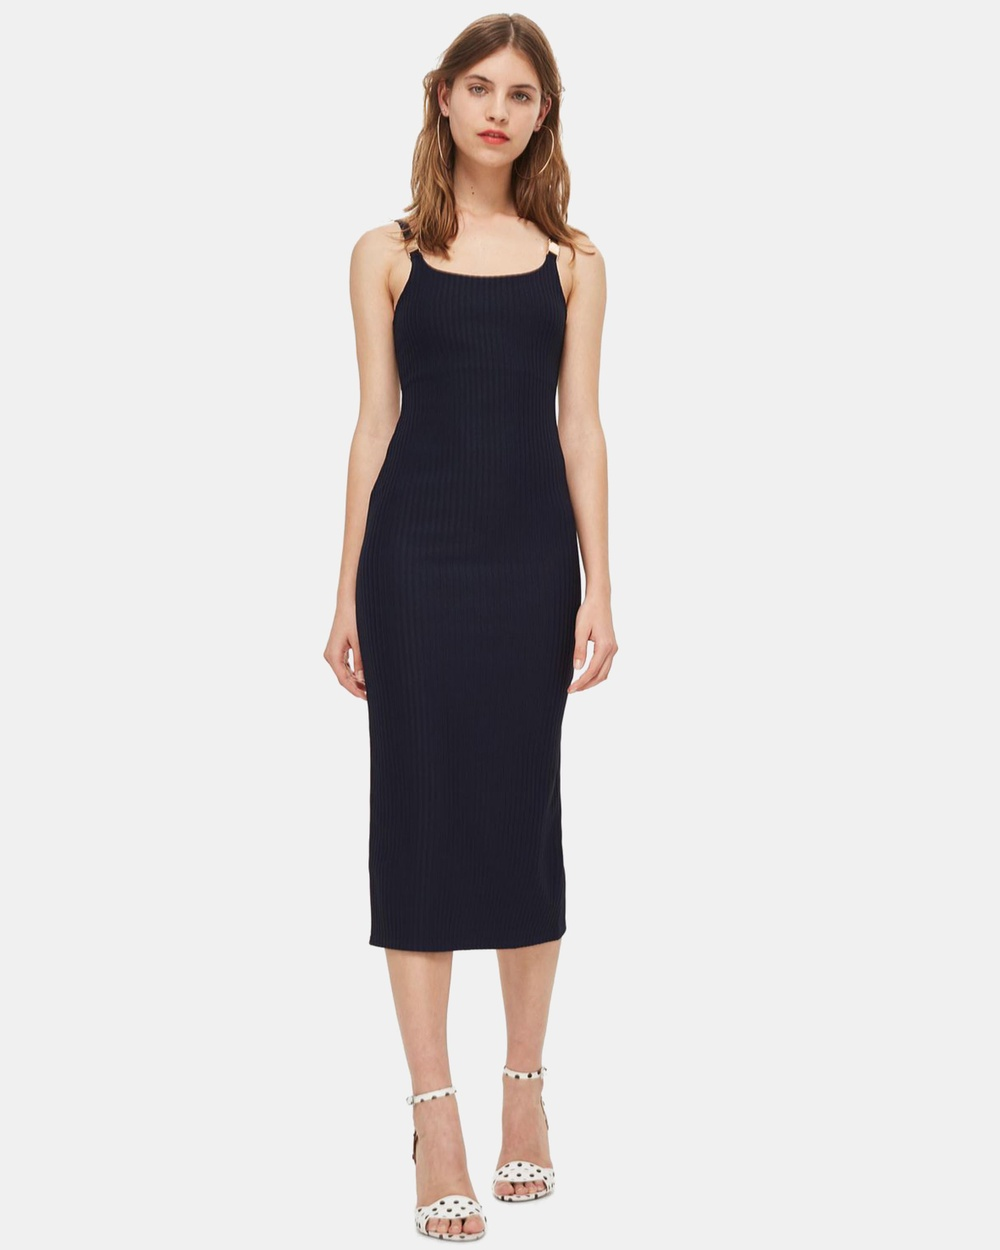 TOPSHOP Buckle Strap Detail Midi Dress Bodycon Dresses Navy Blue Buckle Strap Detail Midi Dress